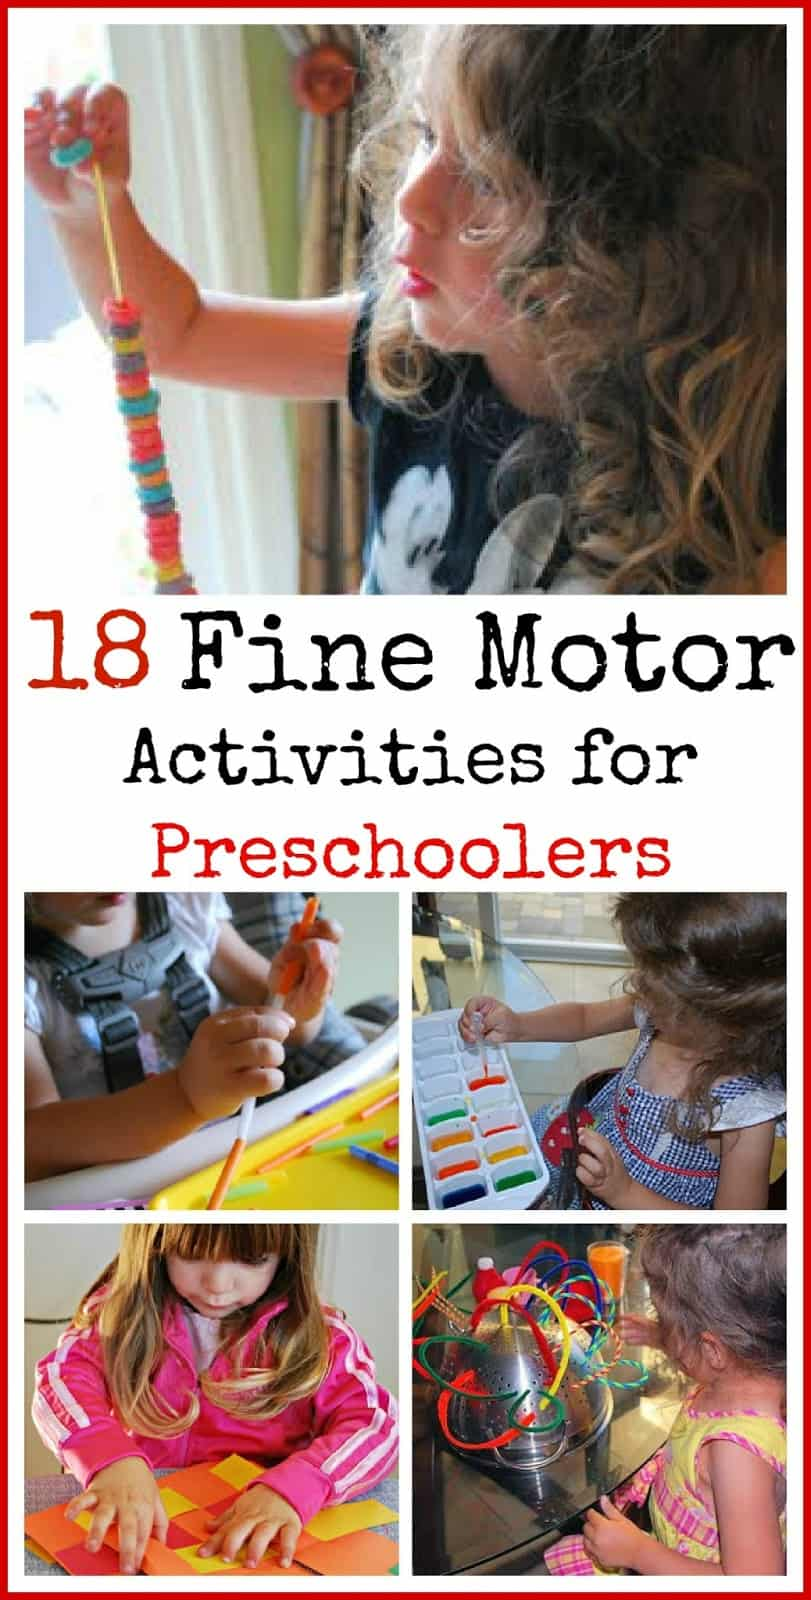 18 Fine Motor Activities for Preschoolers - Mess for Less